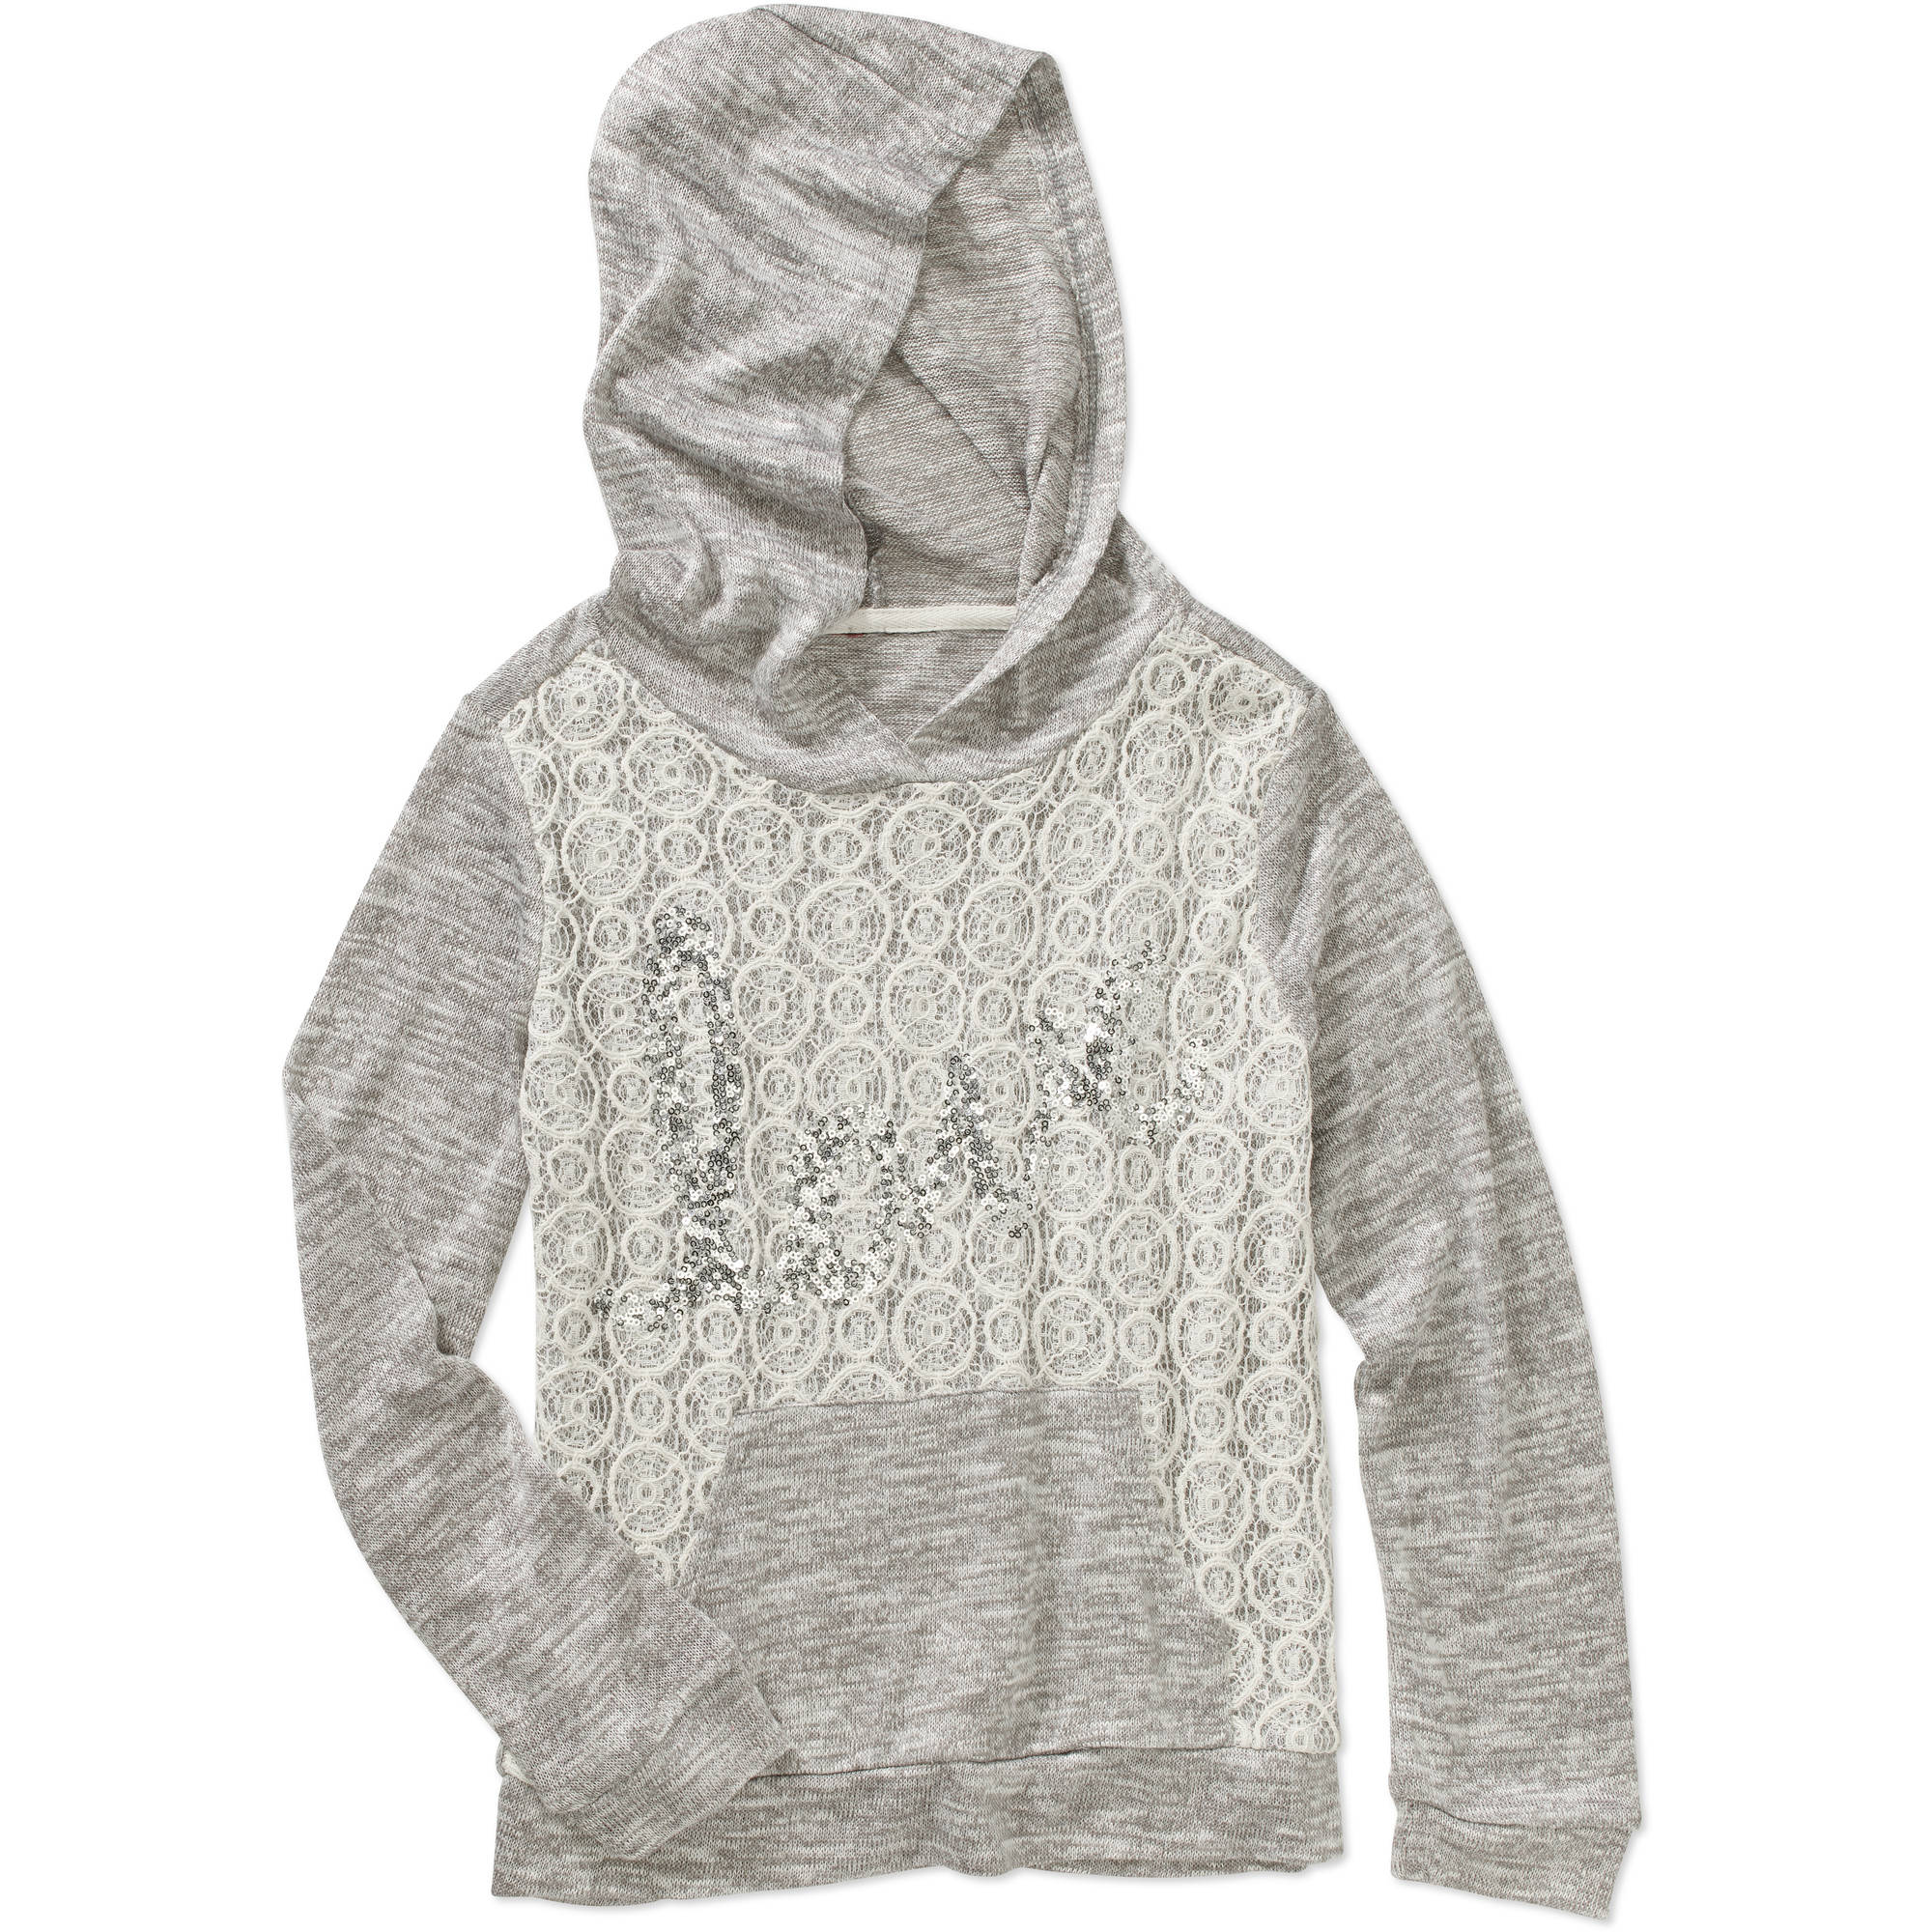 Miss Chievous Girls' Crochet Front Love Hoodie with Kangaroo Pocket